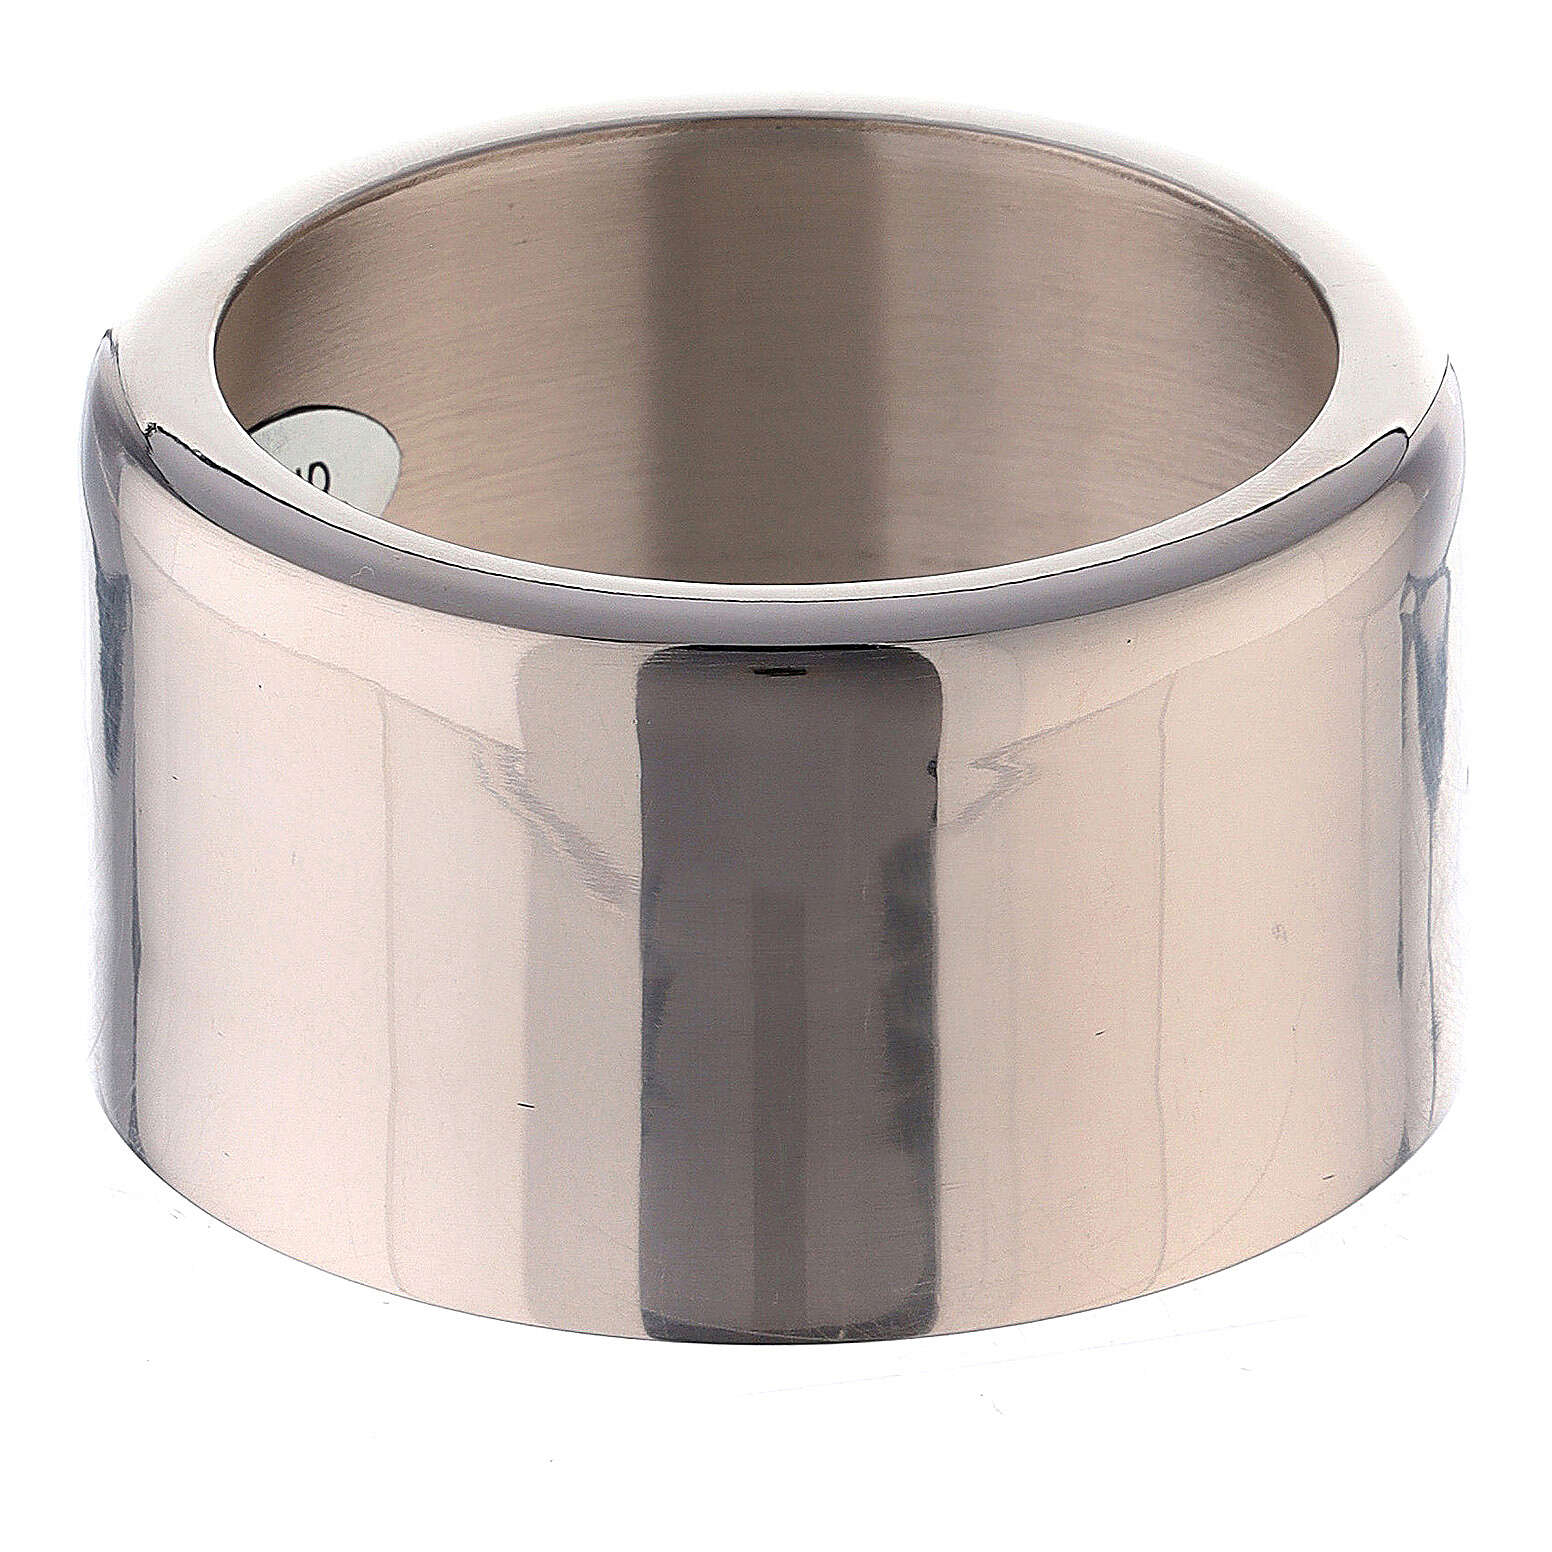 Decorative candle ring of nickel-plated brass 1 1/4 in 4